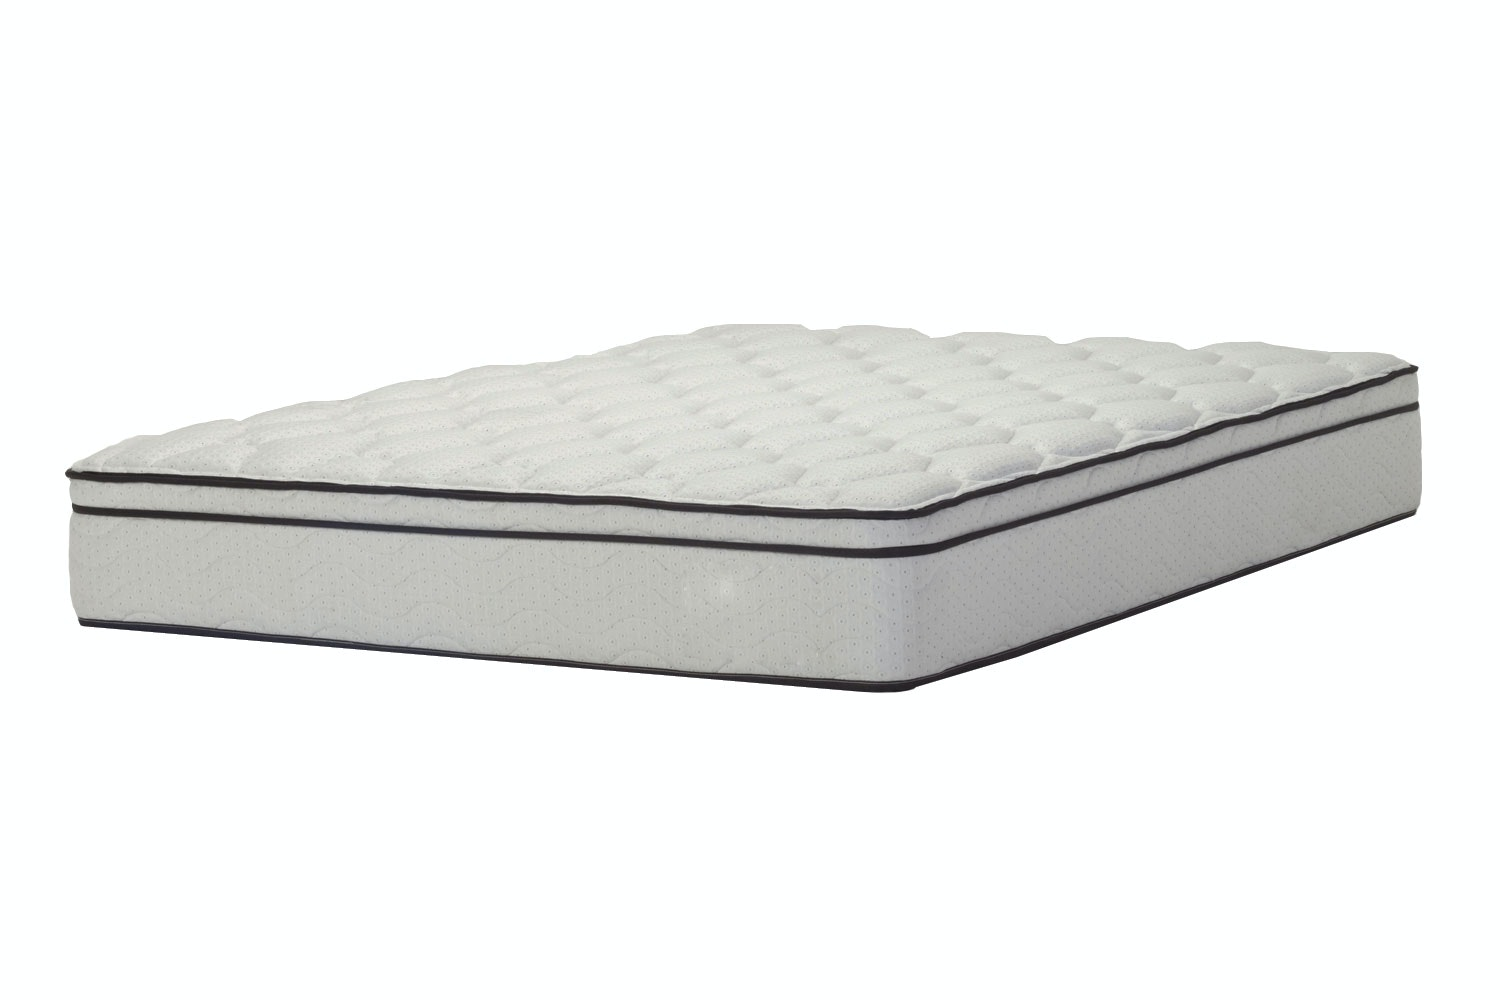 Sierra Double Mattress by A.H. Beard